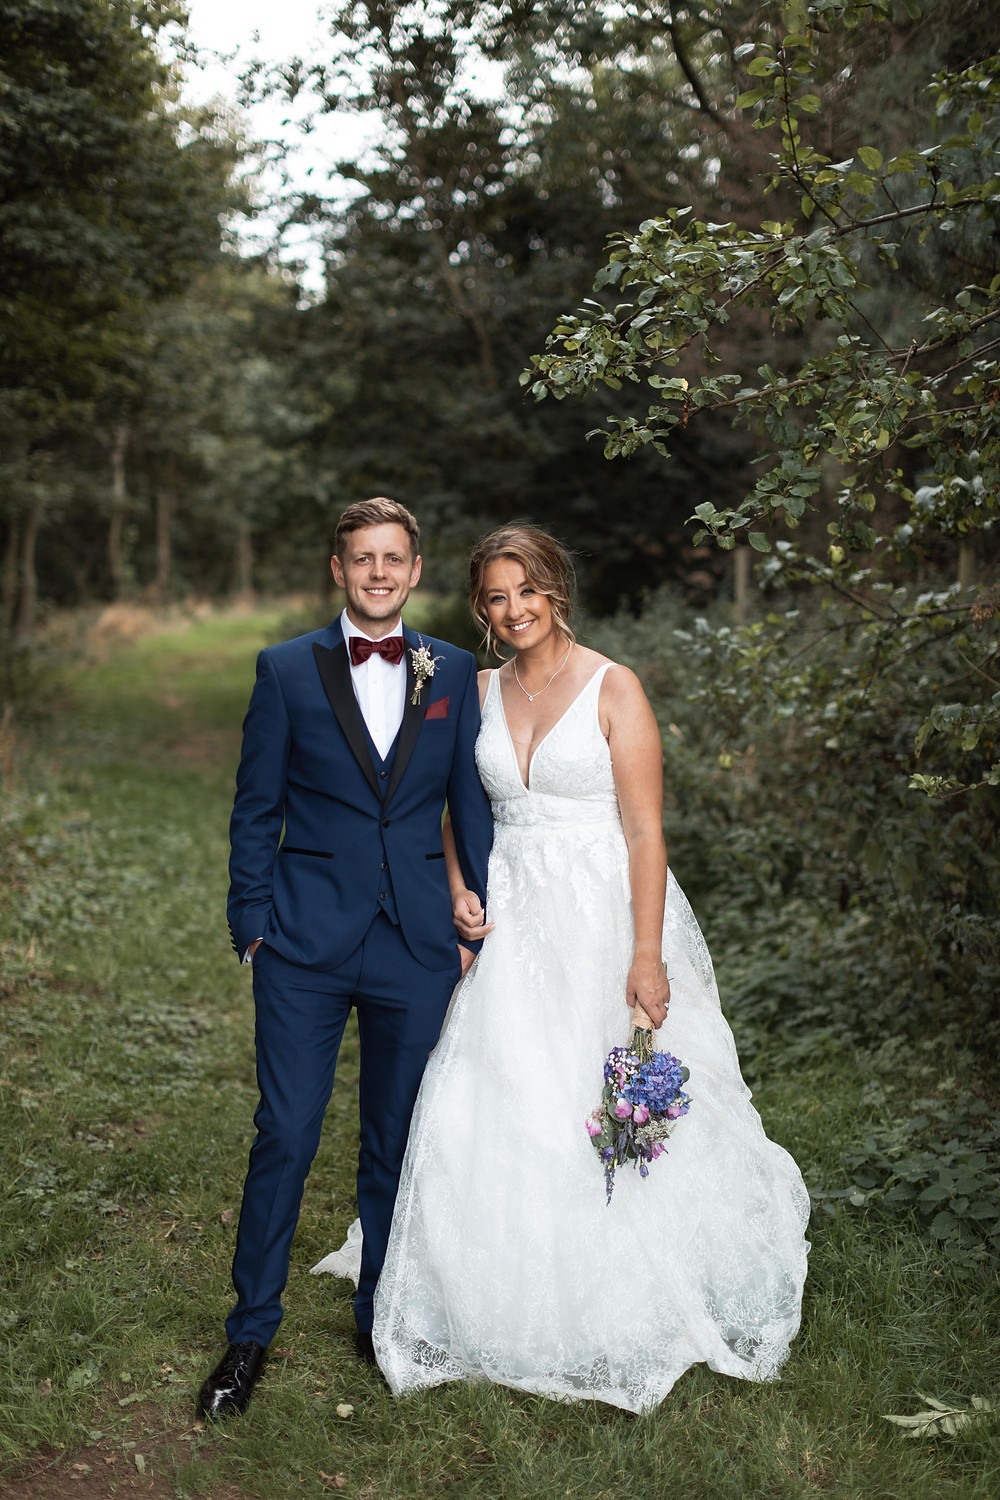 Full length wedding portrait of the bride and groom